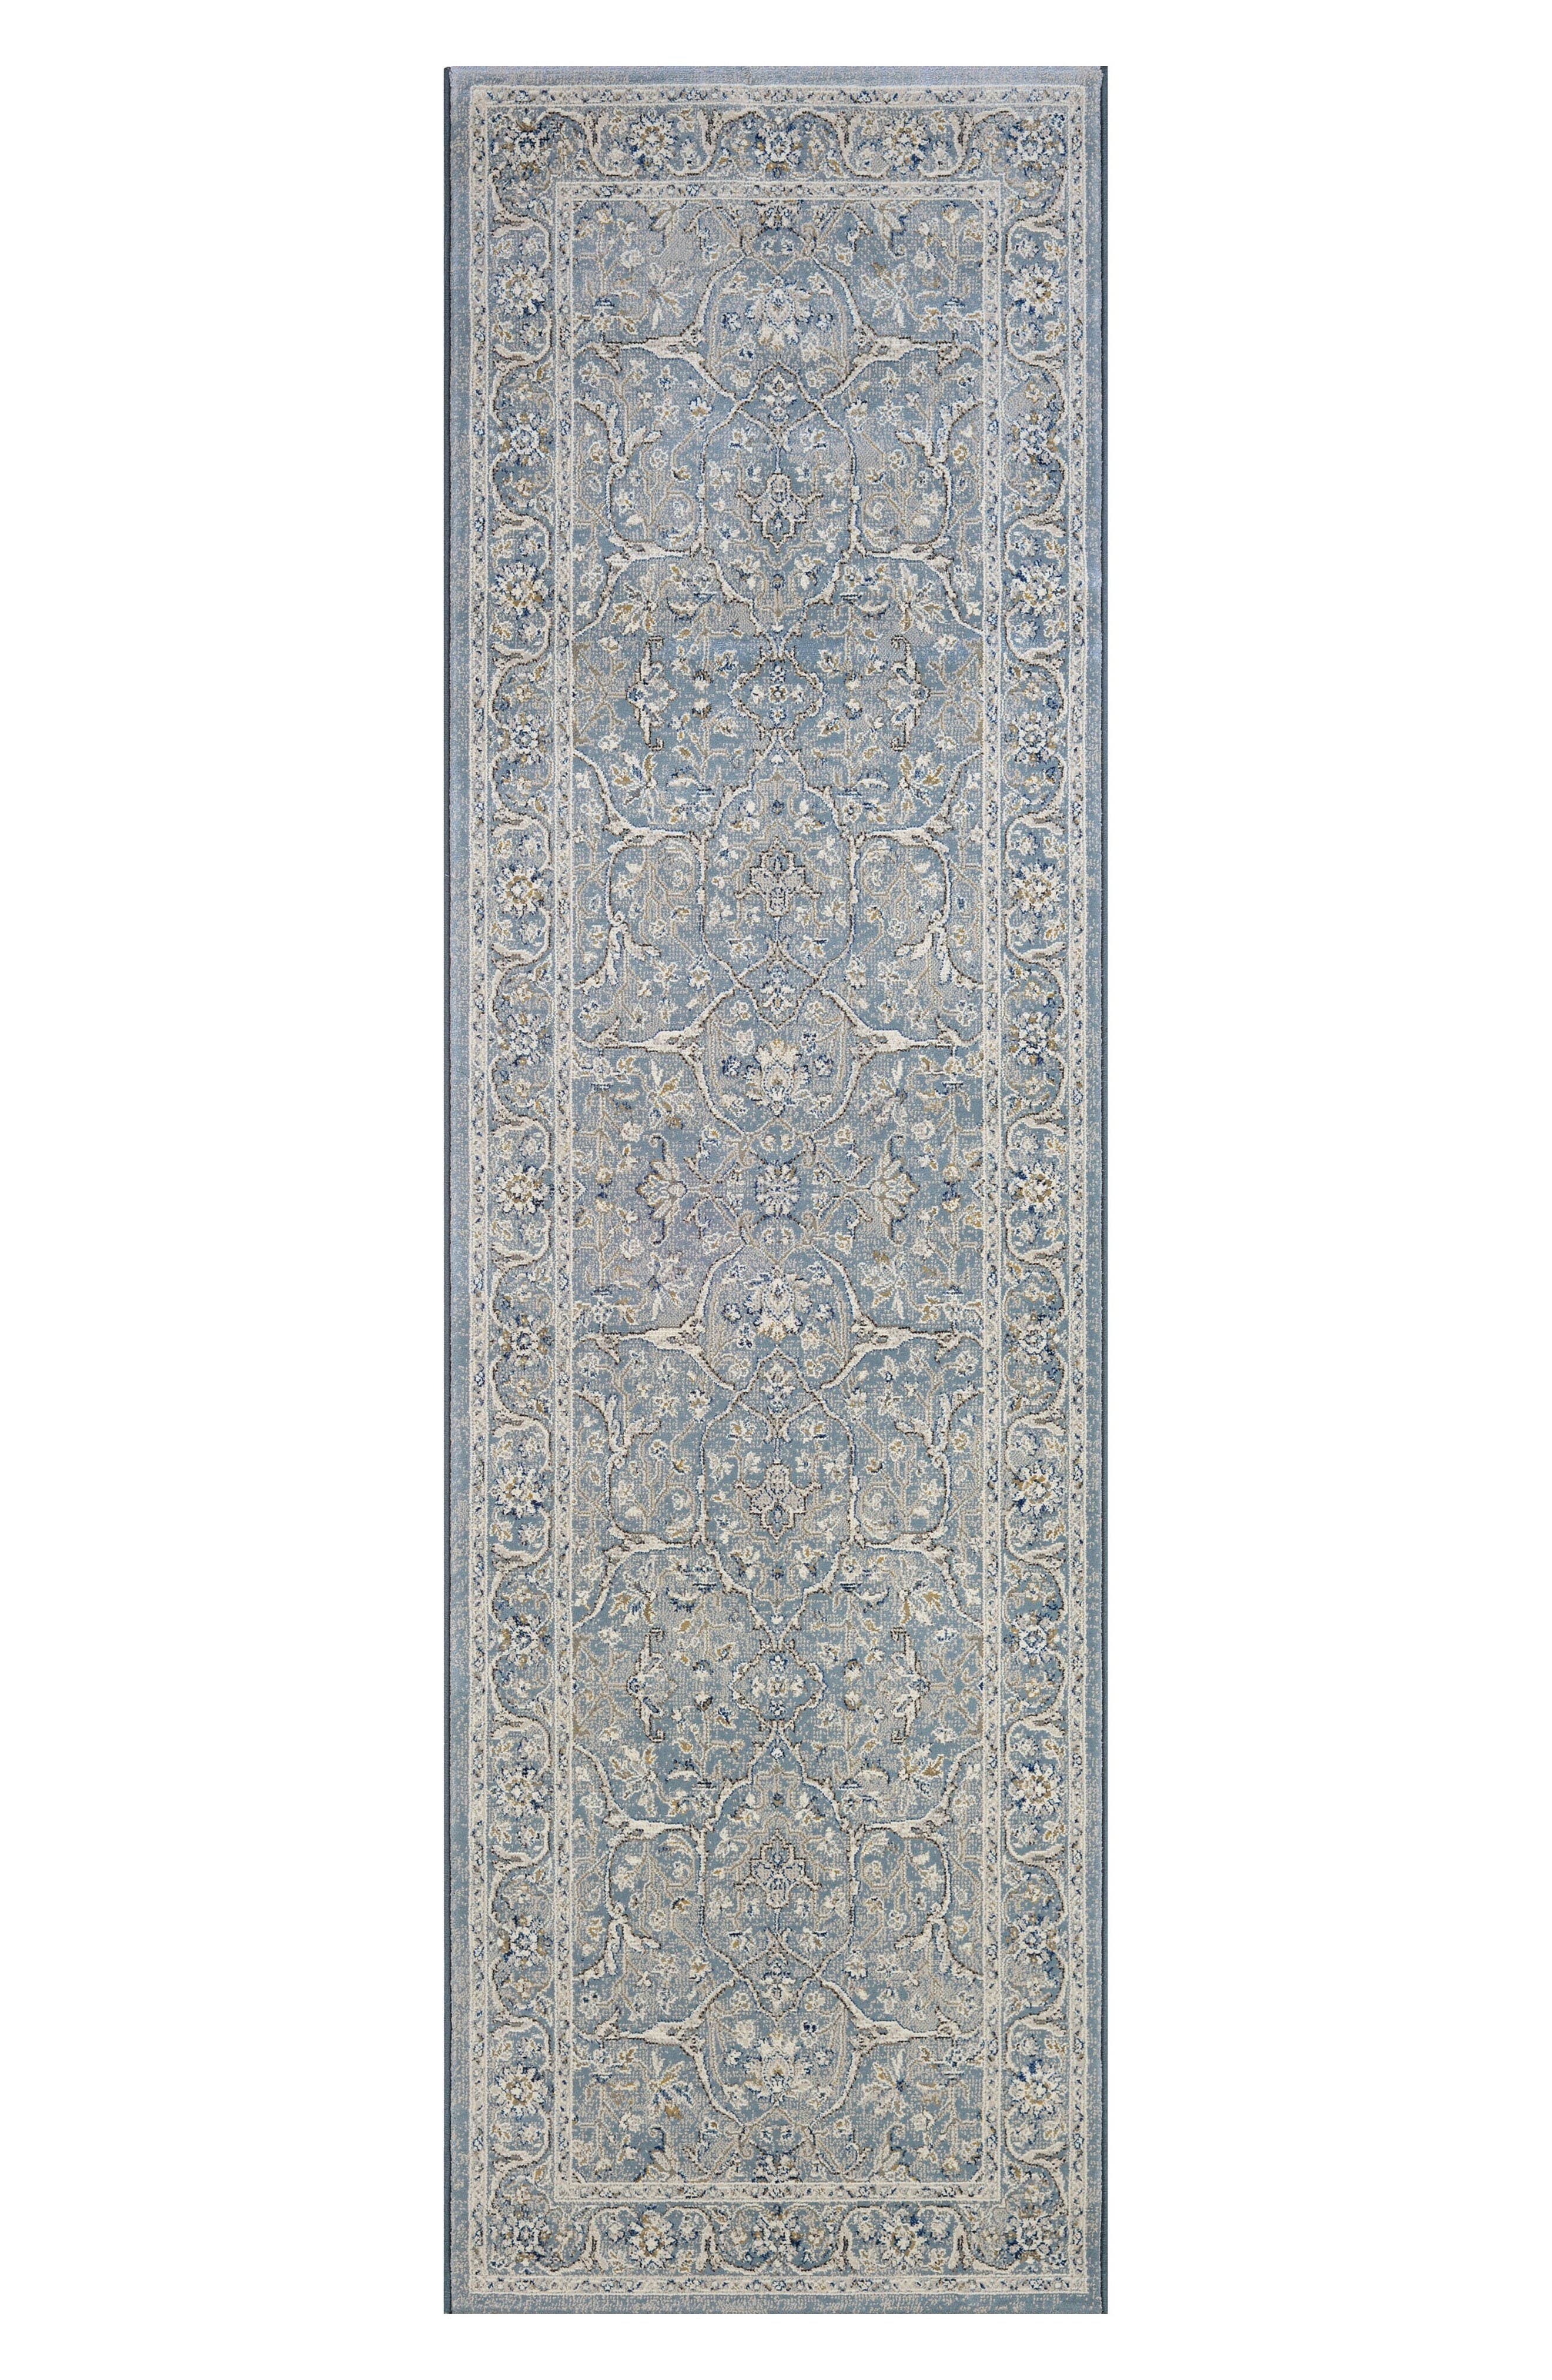 Floral Yazd Indoor/Outdoor Rug,                             Alternate thumbnail 2, color,                             Slate Blue